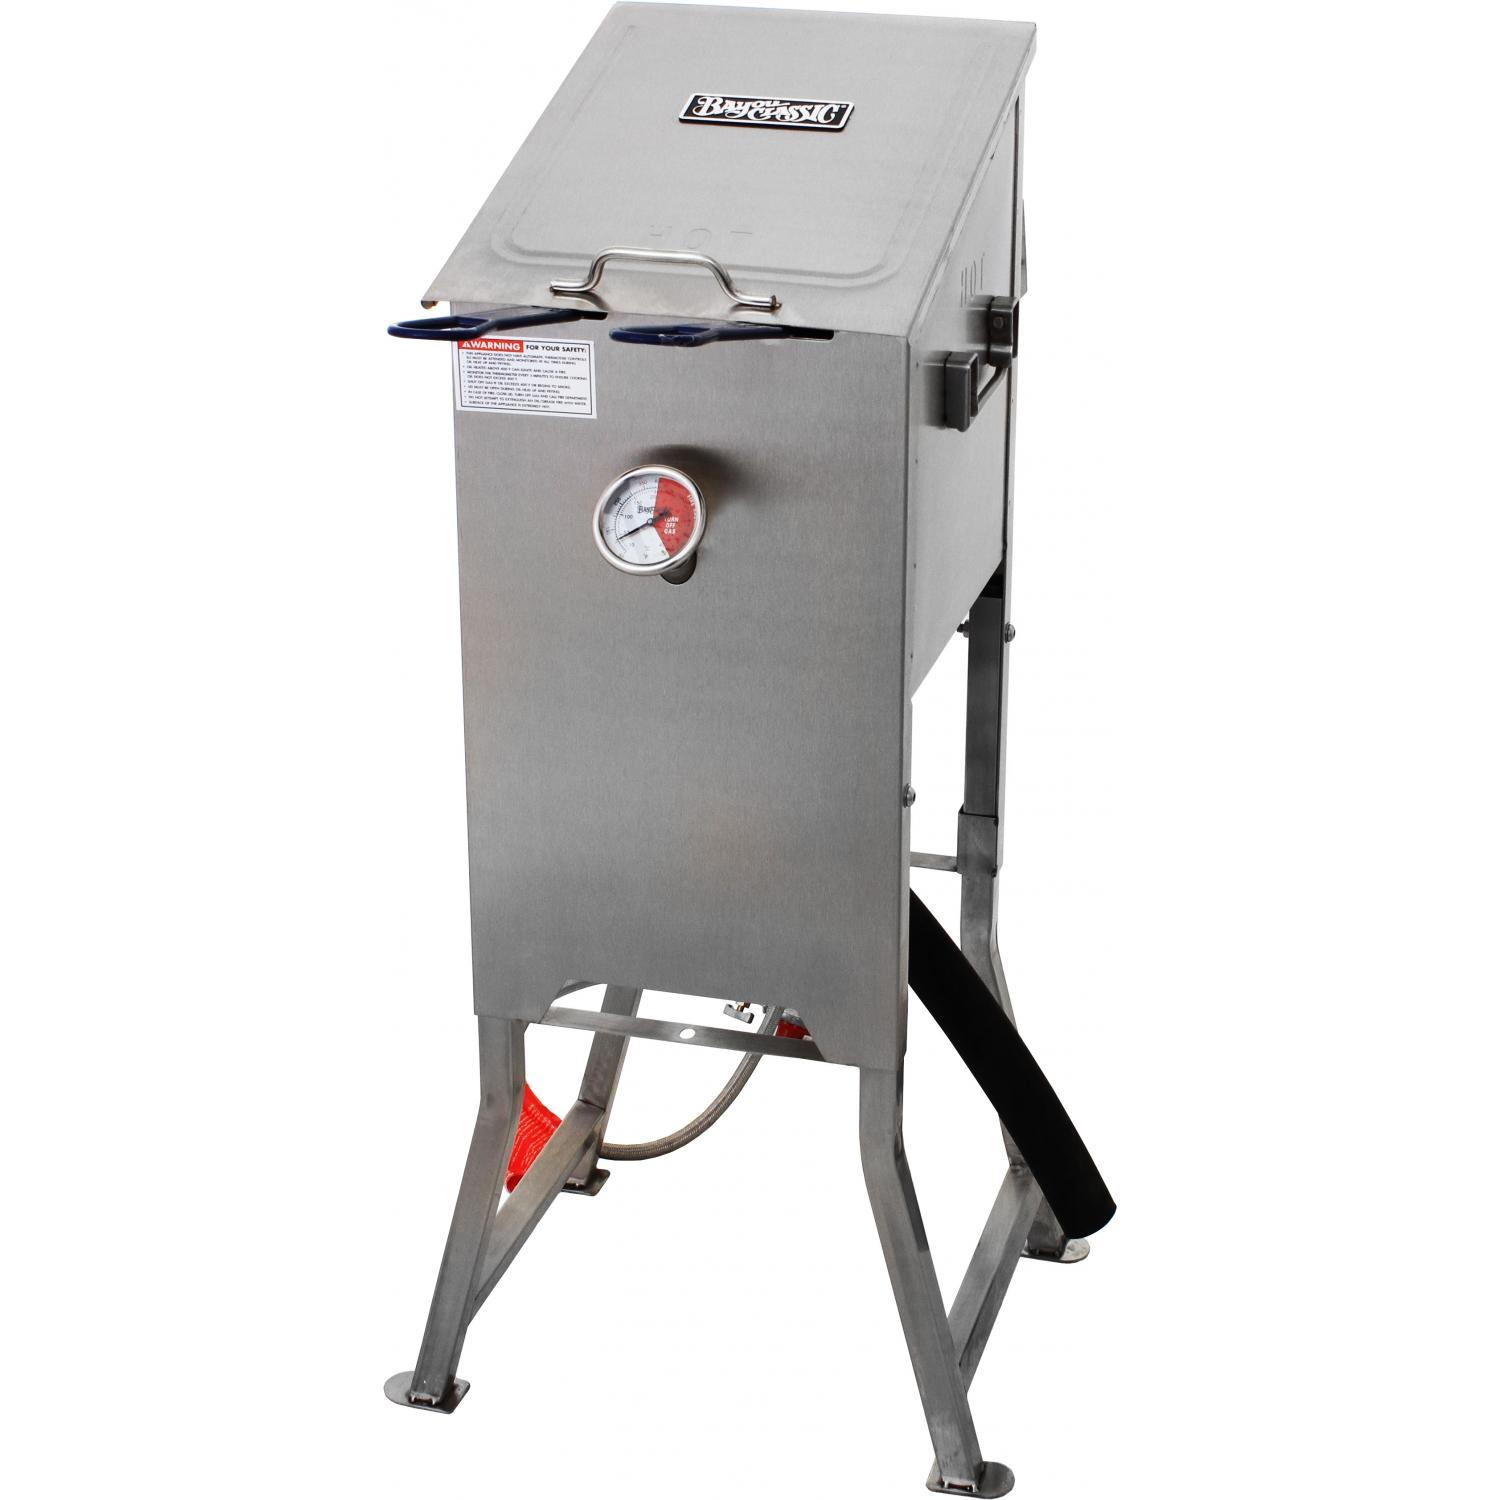 Bayou Classic 2.5 Gallon Stainless Steel Fryer With Stainless Steel Basket at Sears.com